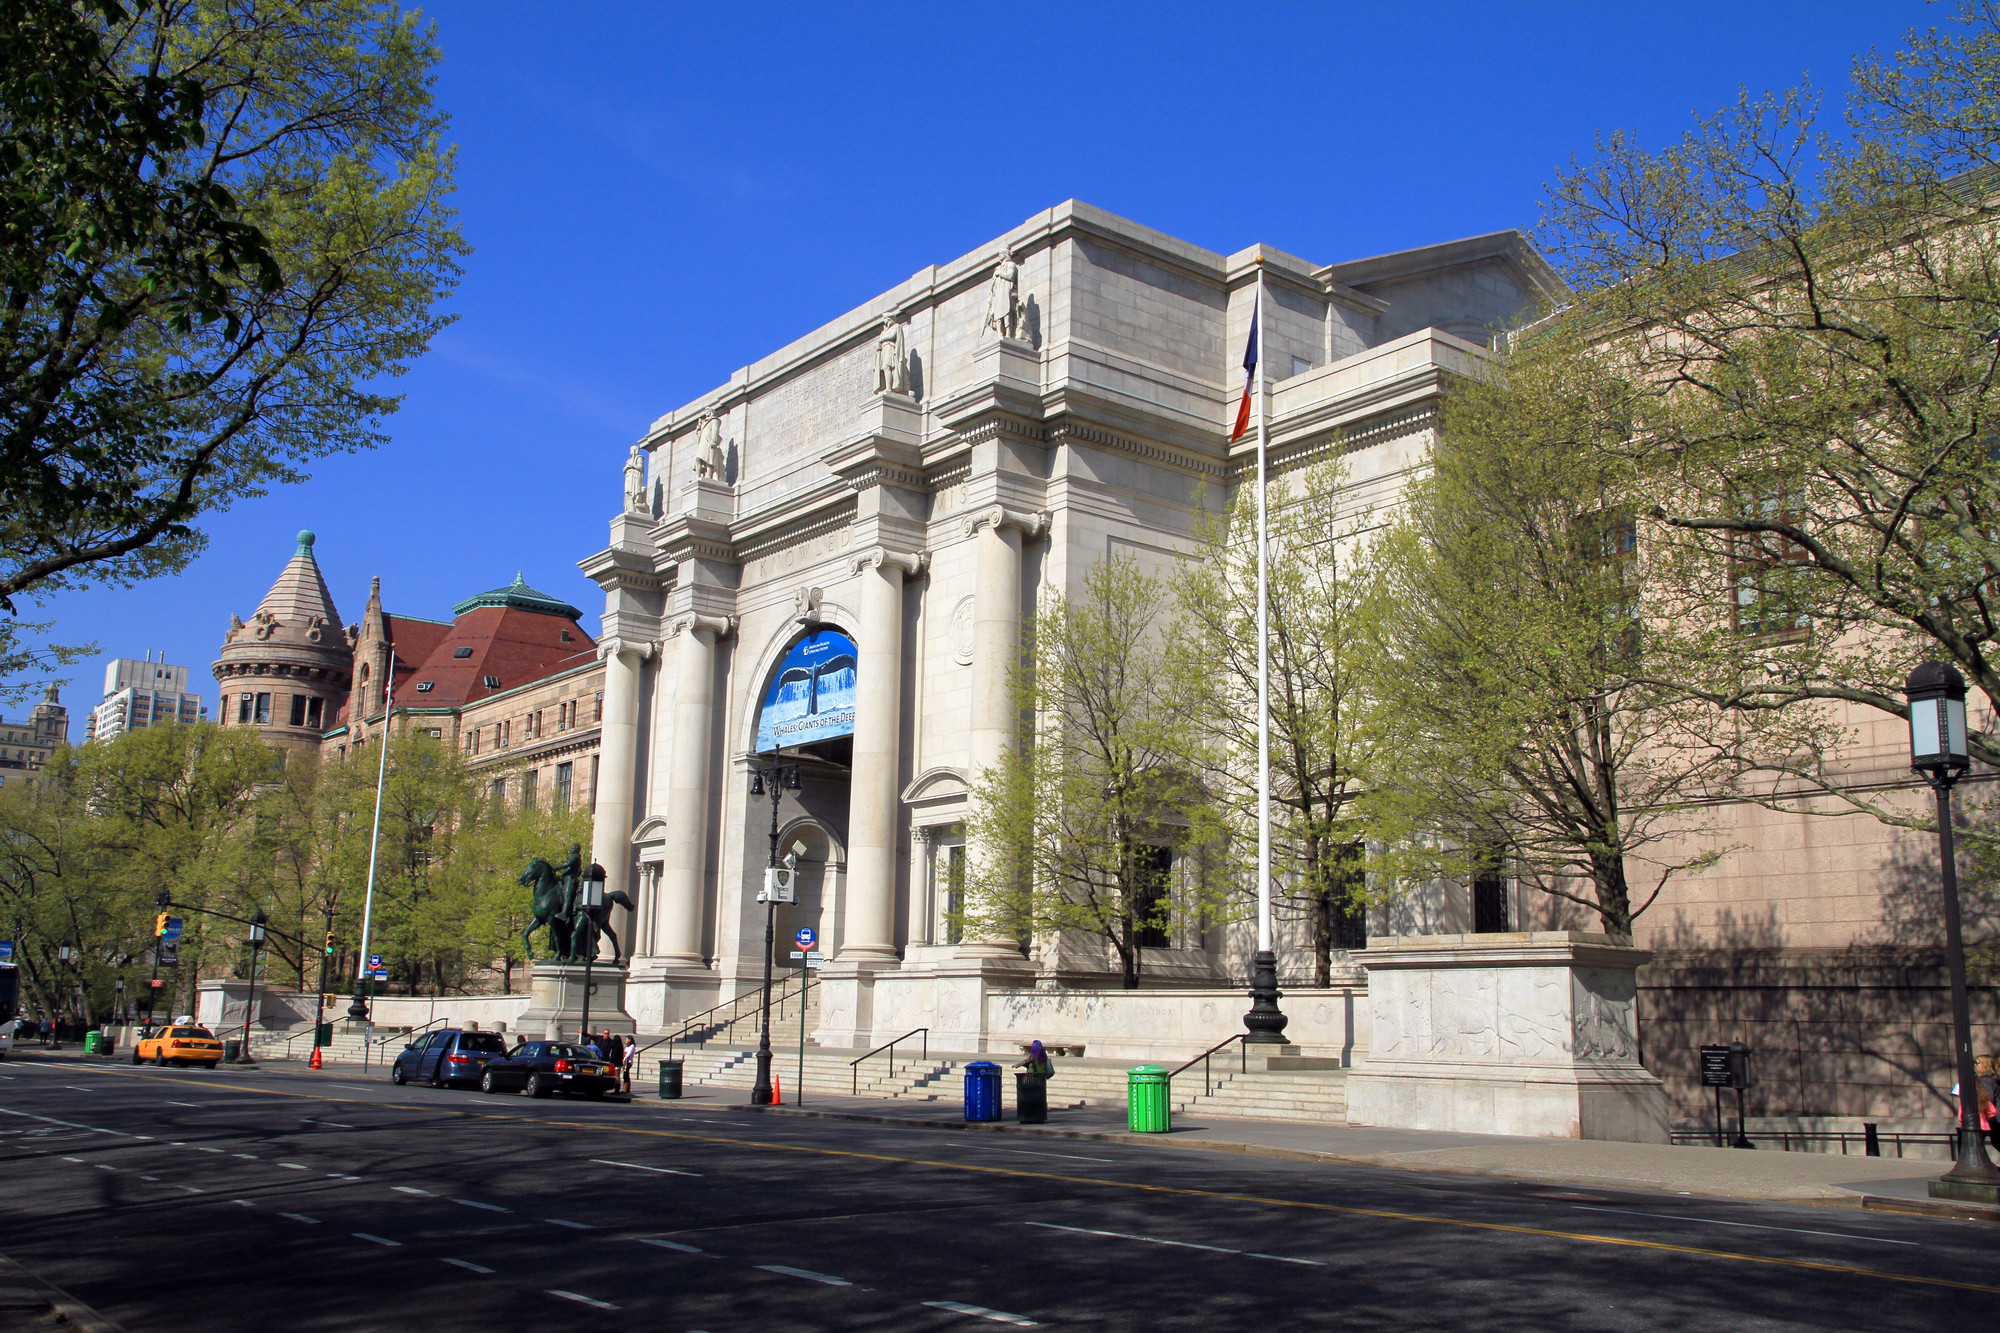 Studio Gang Tapped to Extend American Museum of Natural History, American Museum of Natural History. Image Courtesy of Wikipedia